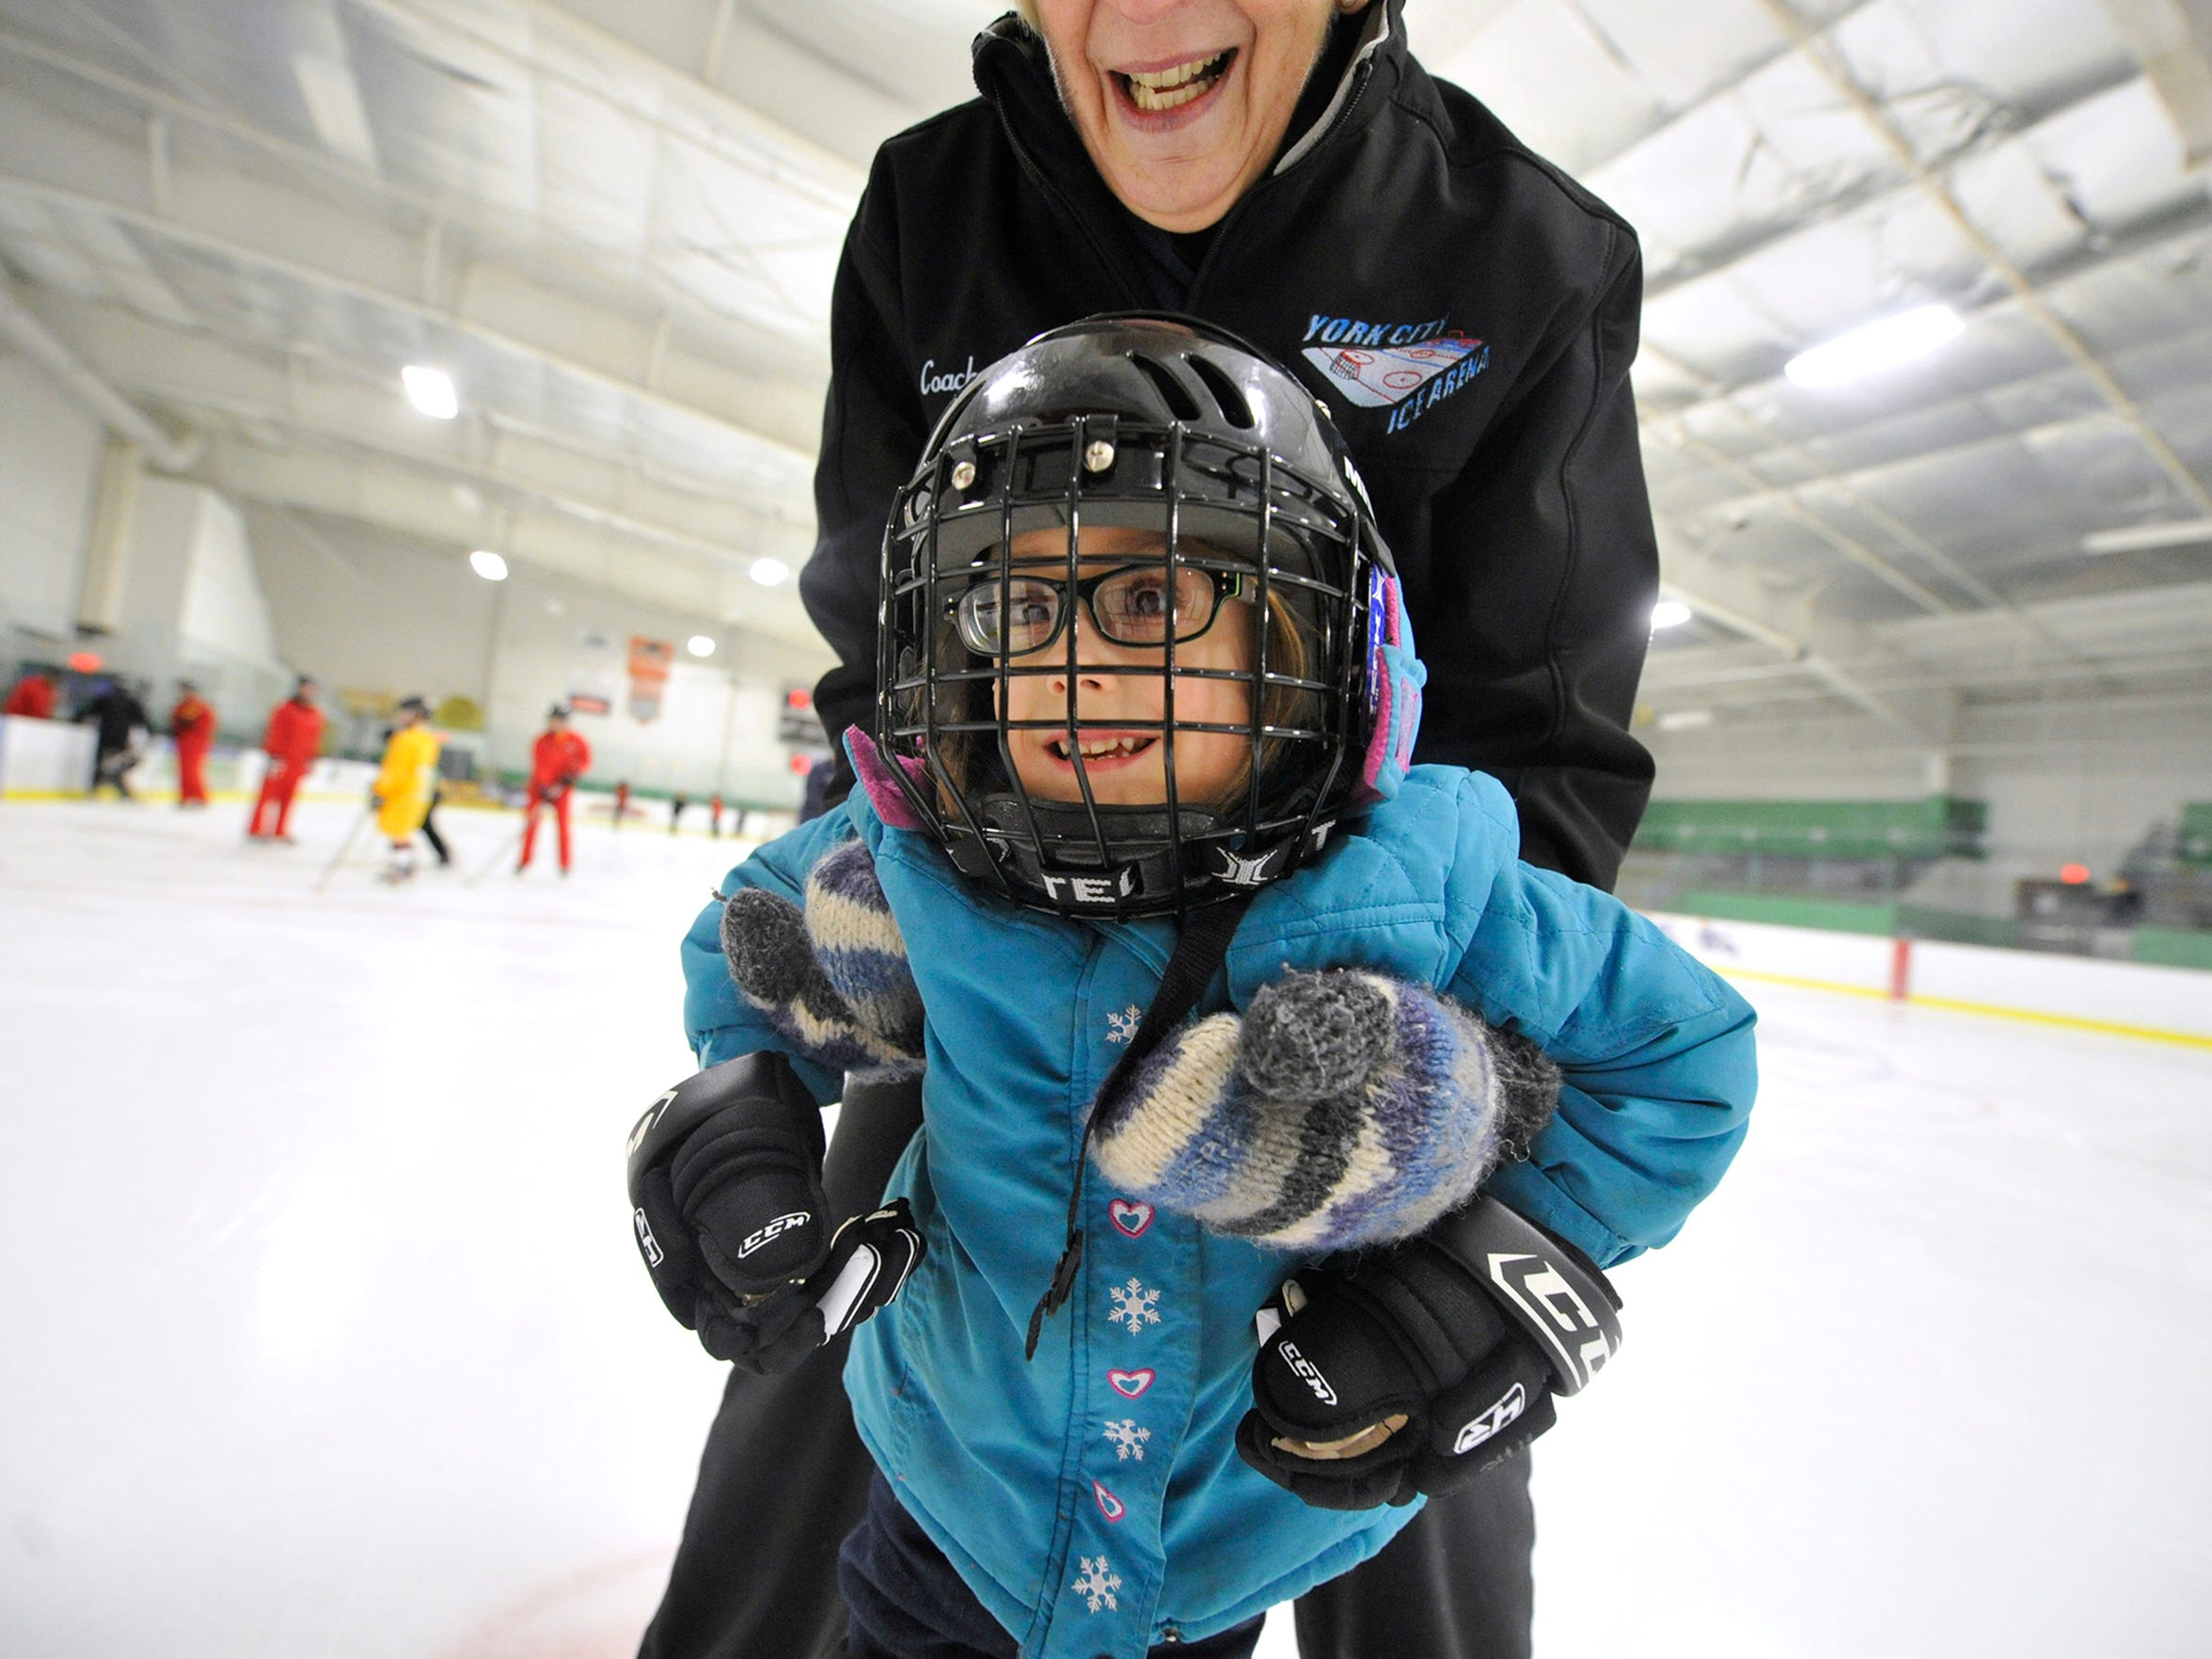 Vivienne Giblin, 5, is all smiles as York City Ice